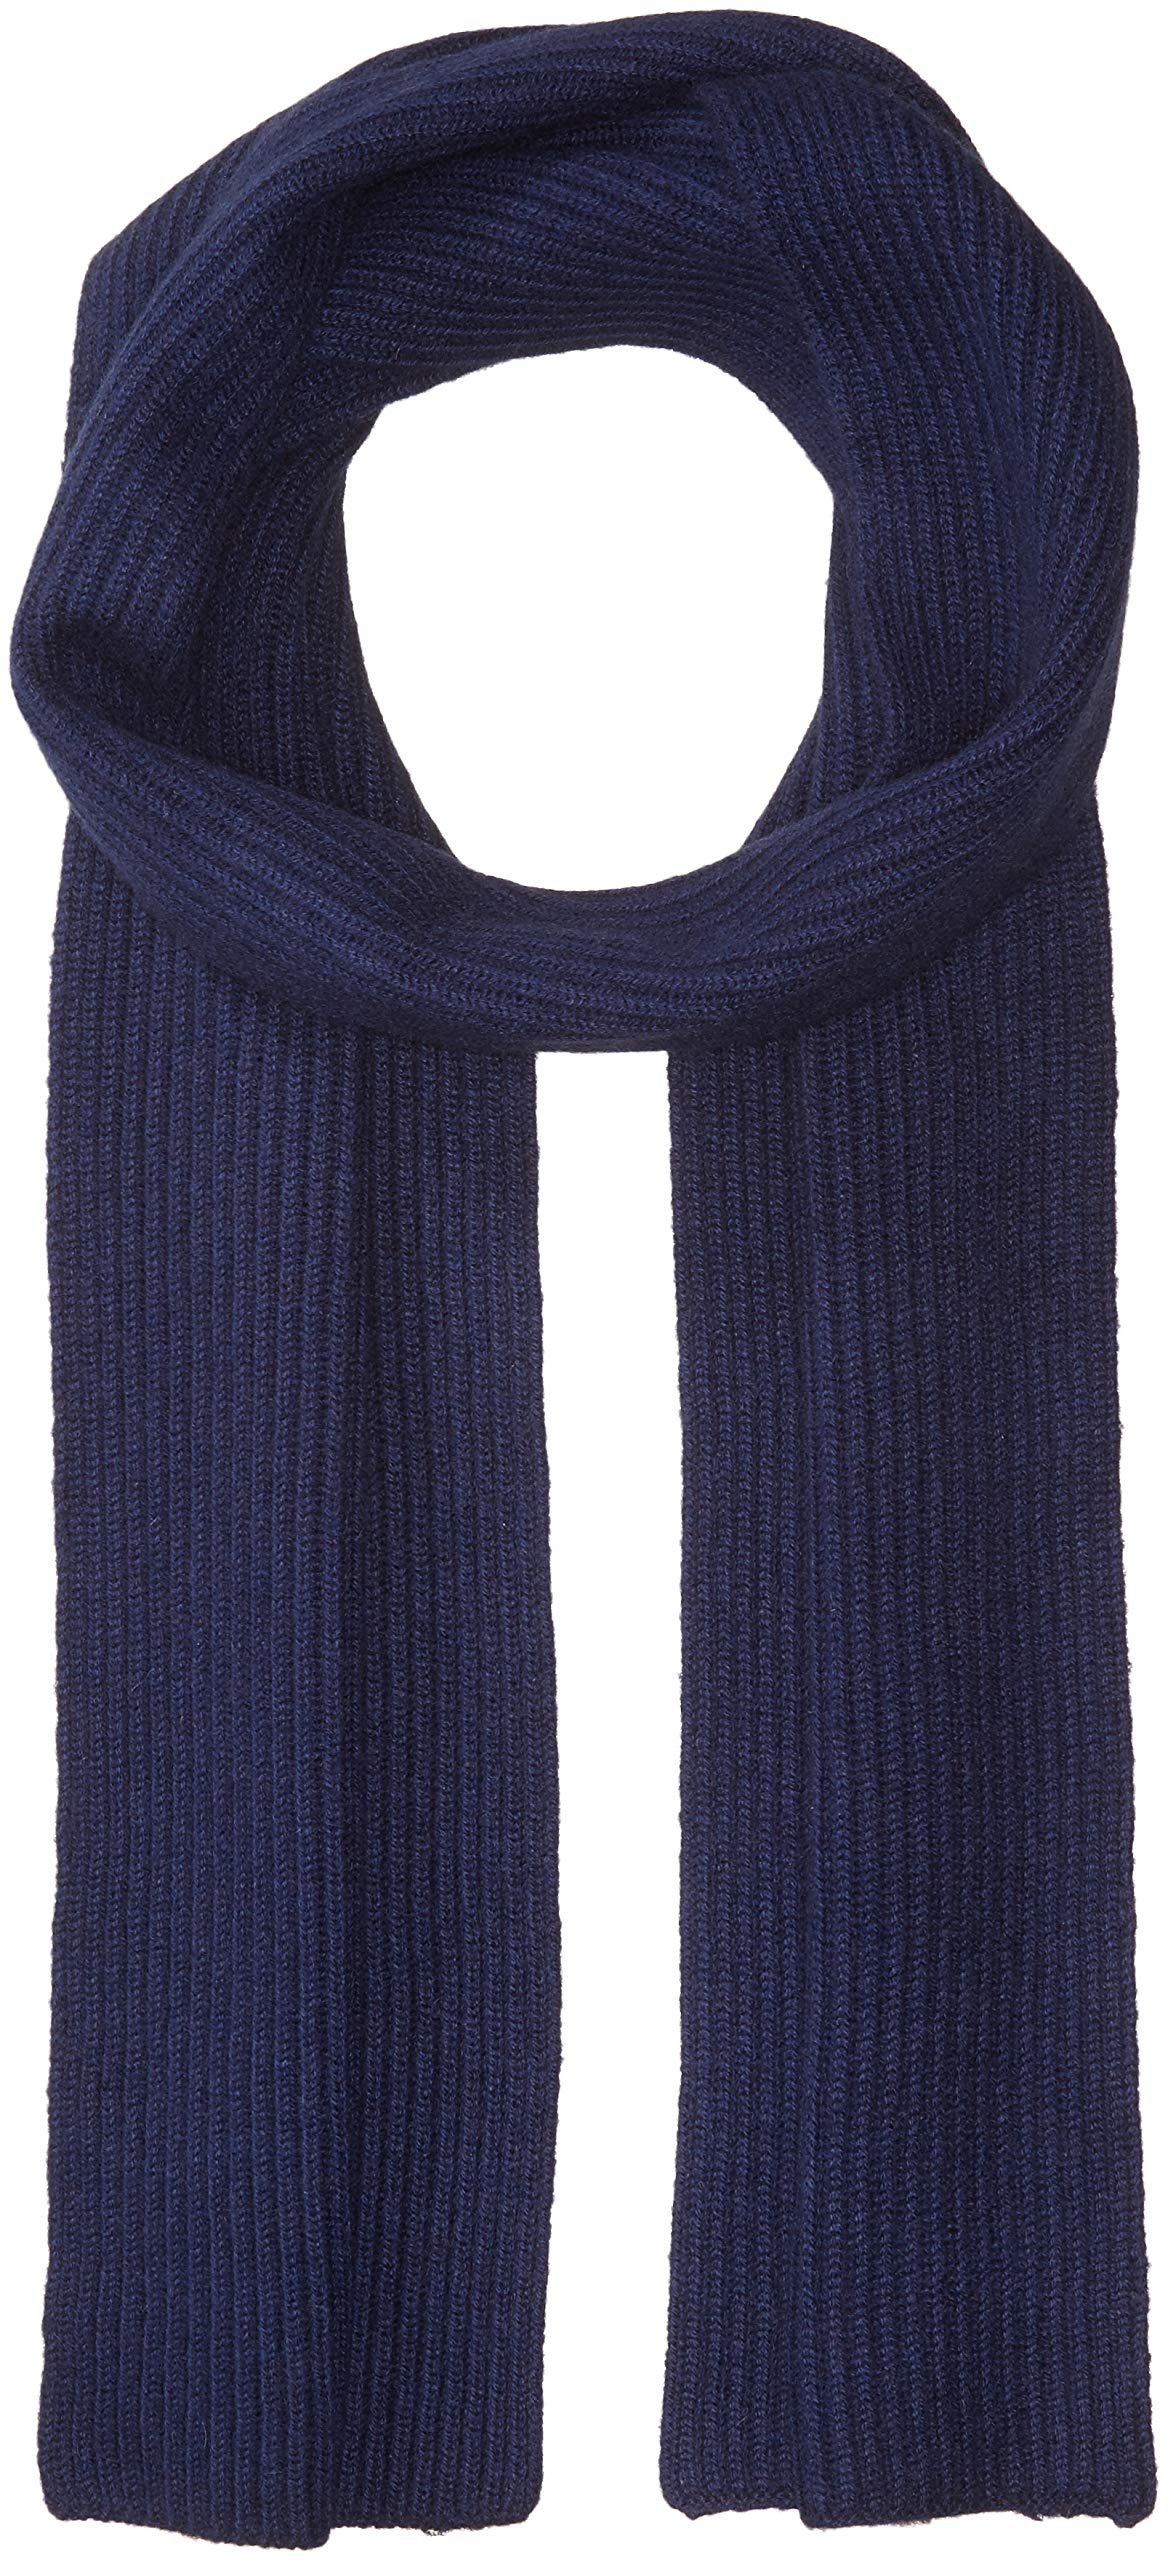 Williams Cashmere Men's Cashmere Rib Knit Scarf, mid navy ONE